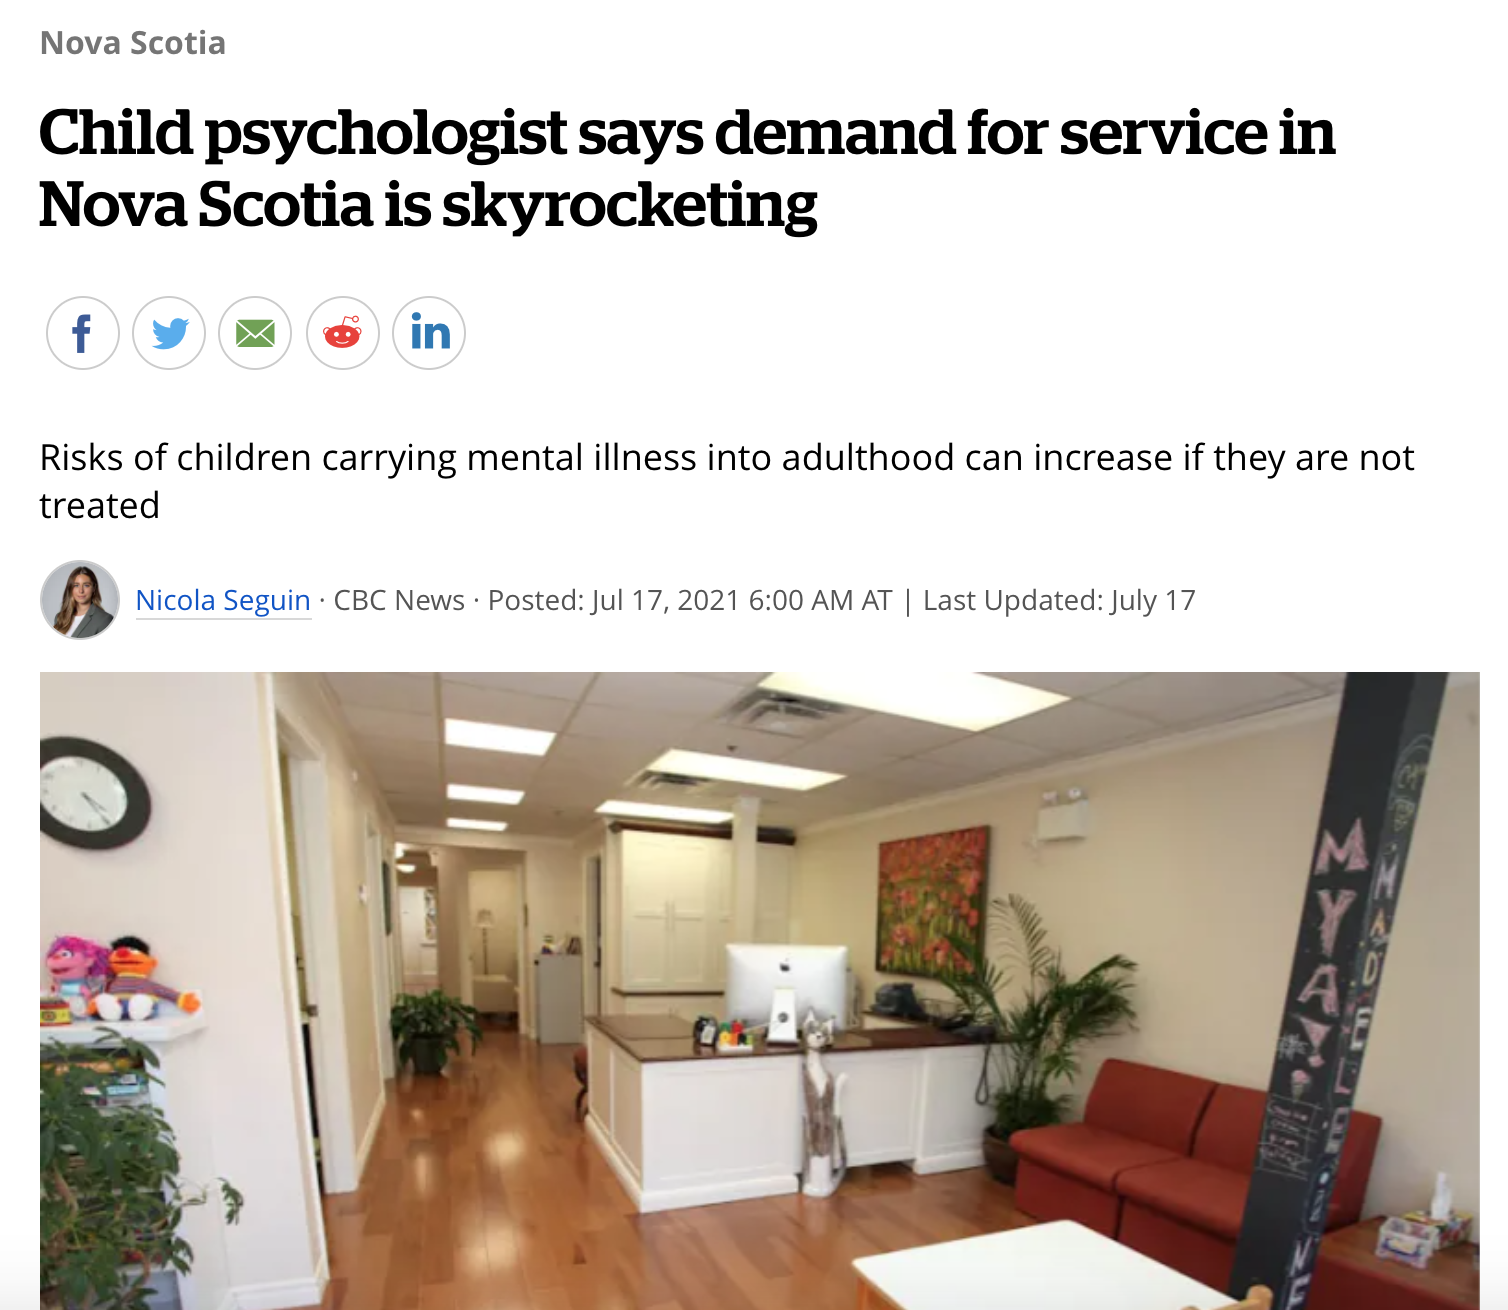 Child psychologist says demand for service in Nova Scotia is skyrocketing